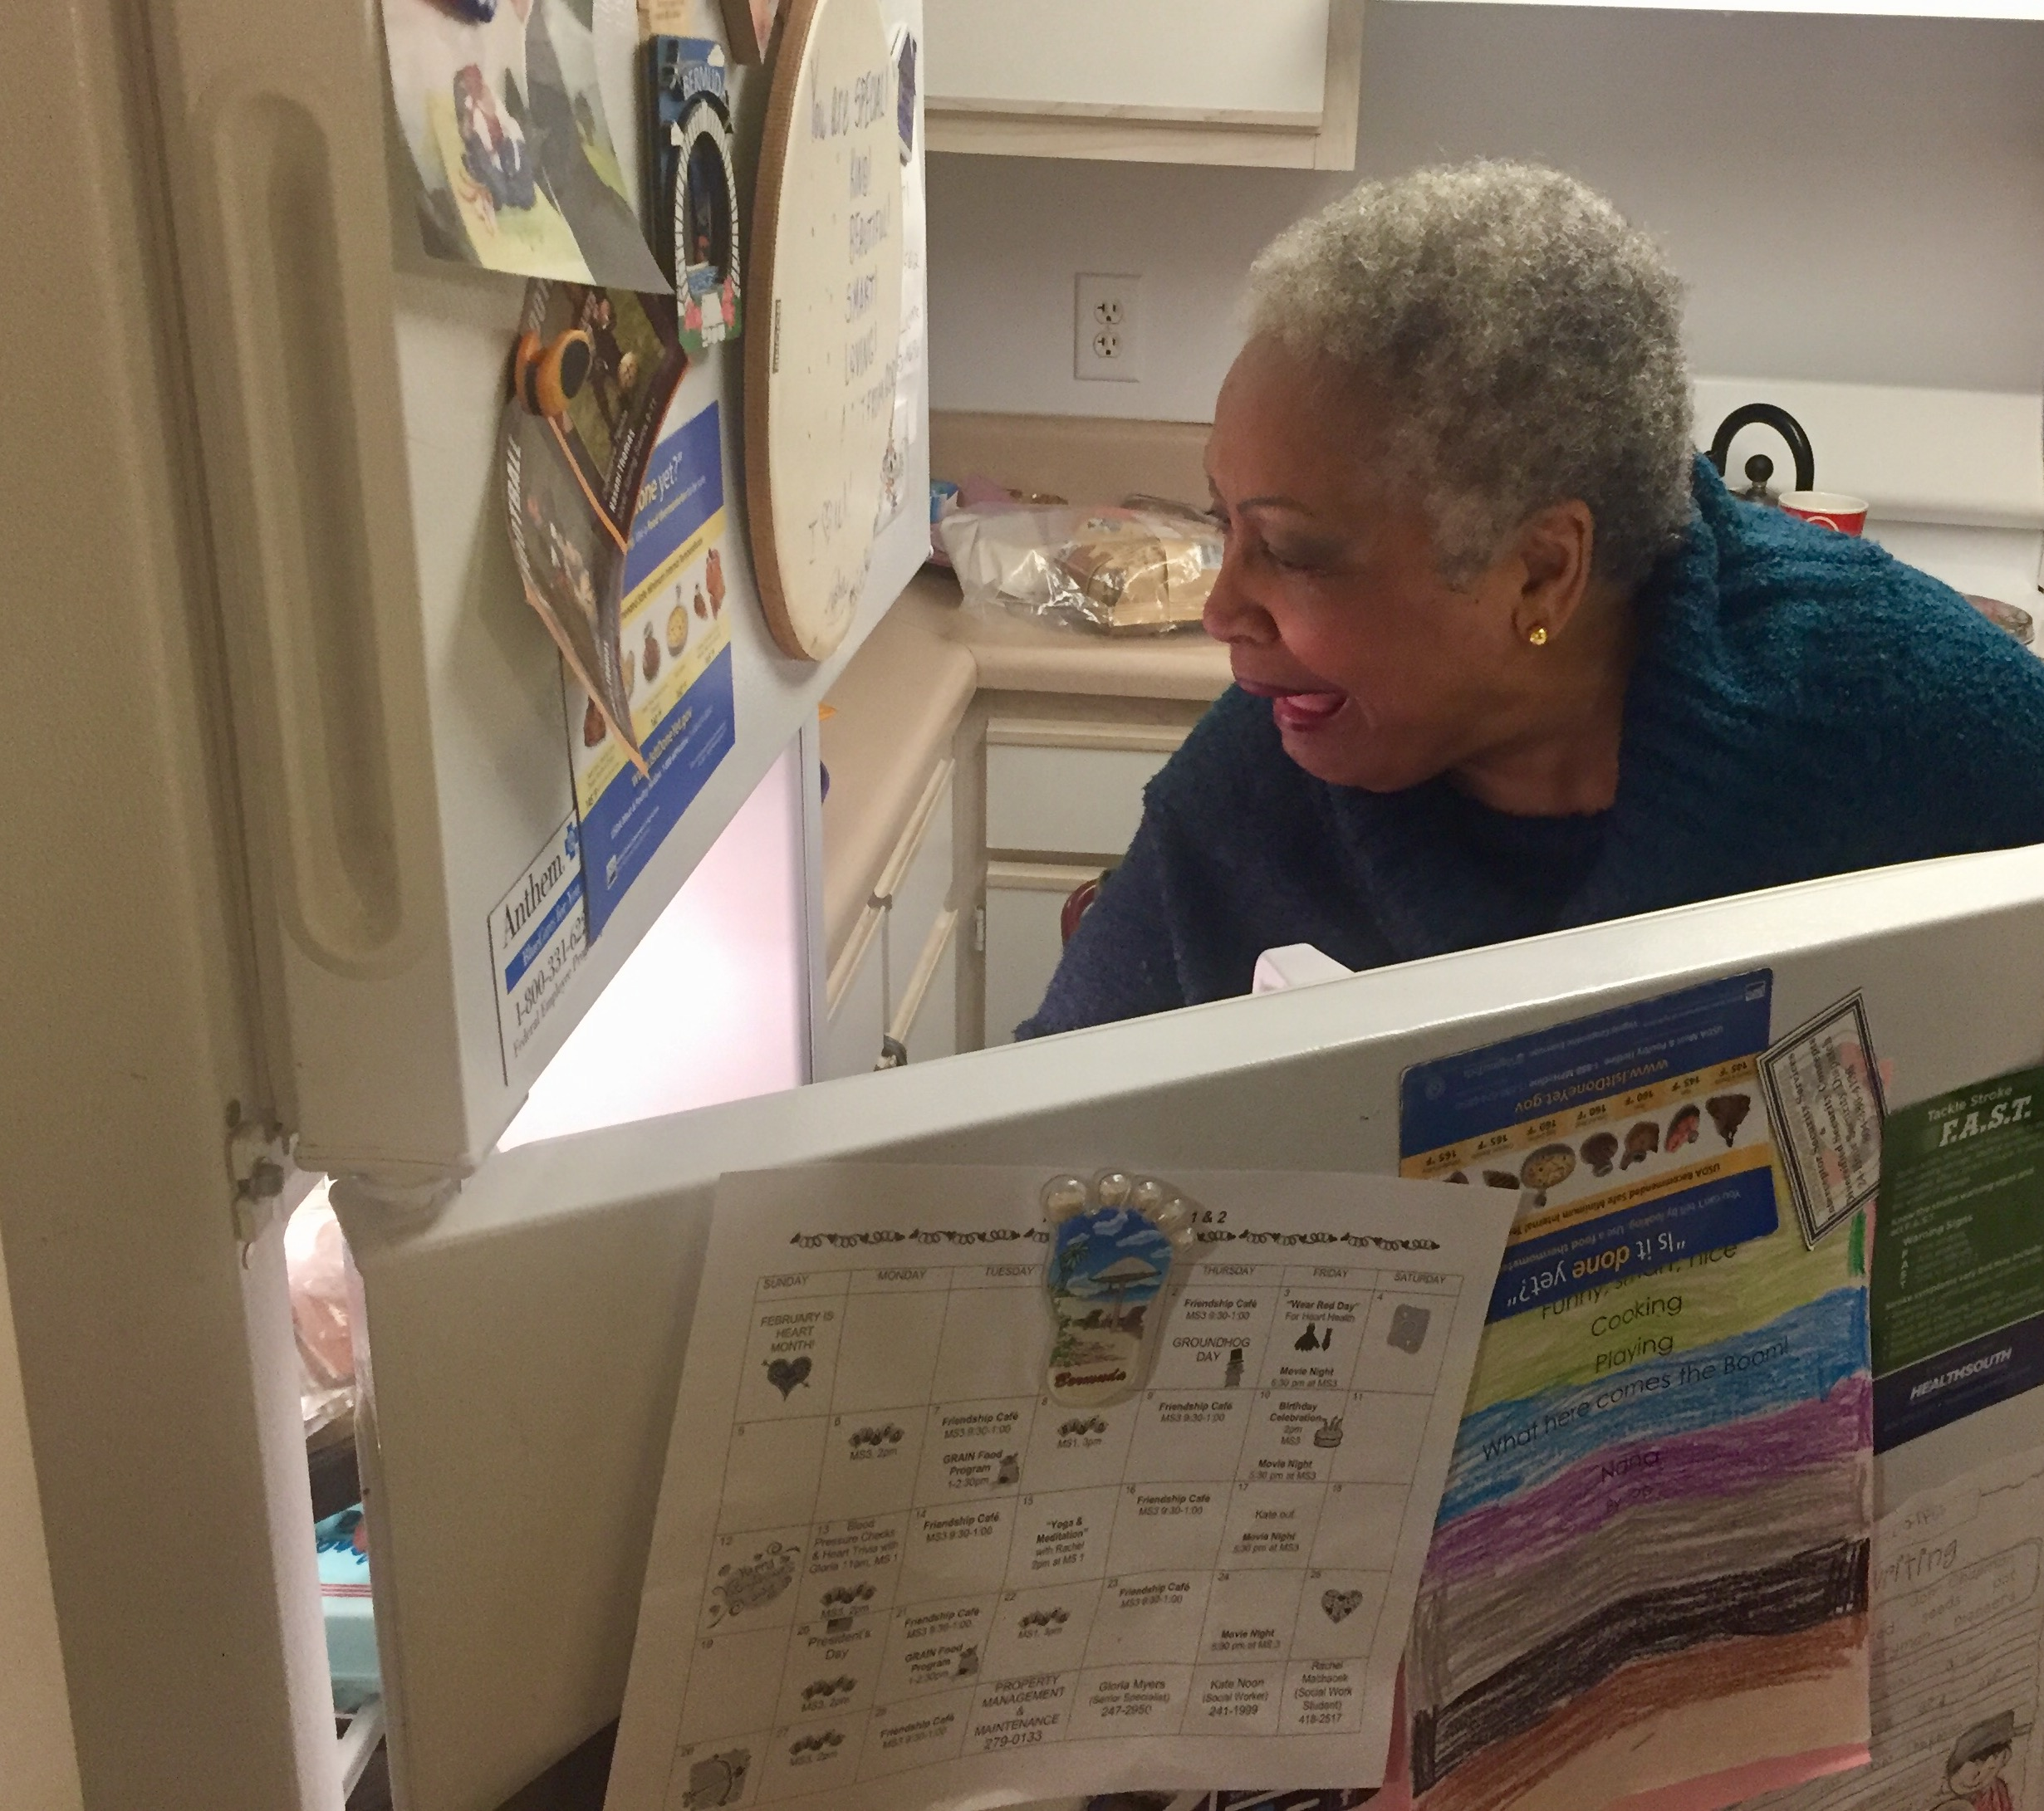 Barbara Waller Nealy says she has made lifelong friends through Meals on Wheels.